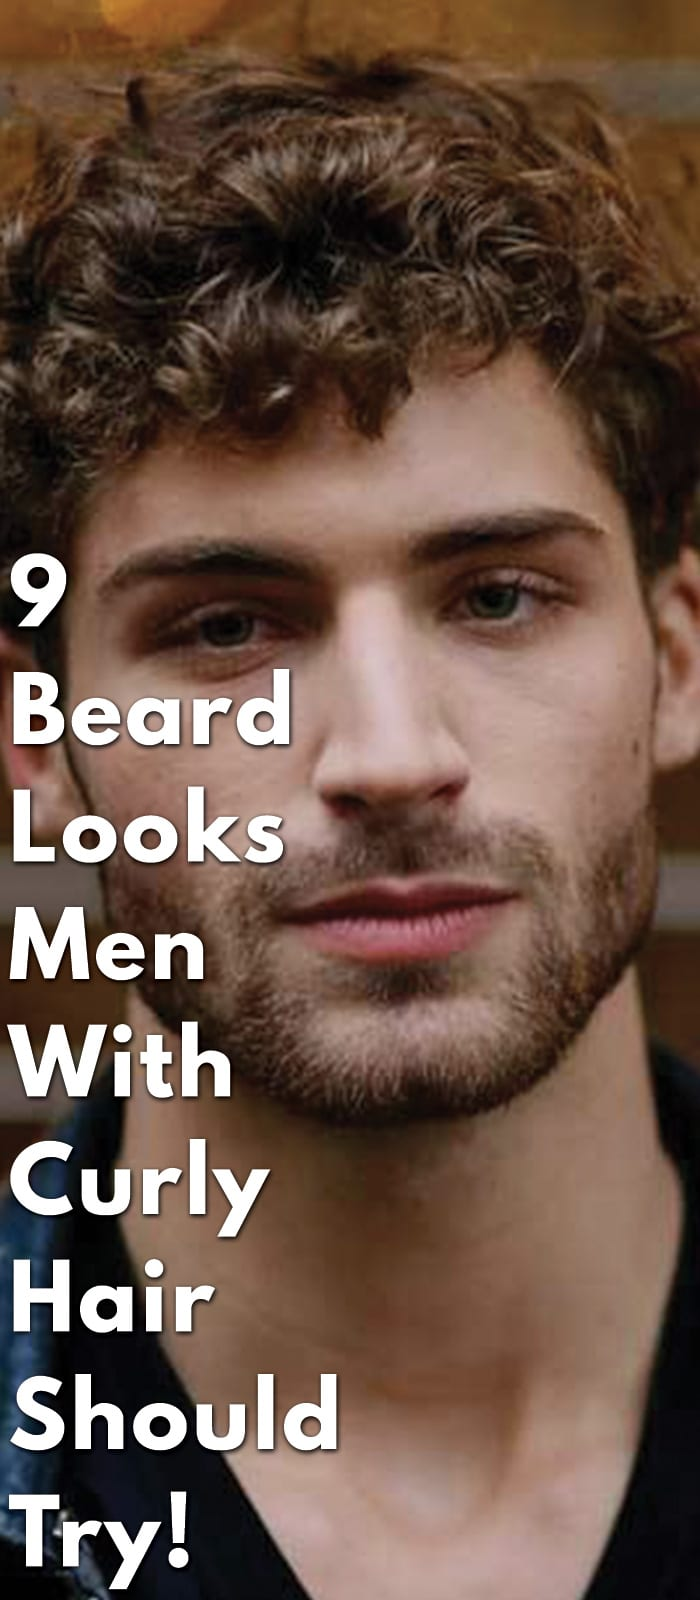 9-Beard-Looks-Men-With-Curly-Hair-Should-Try!.